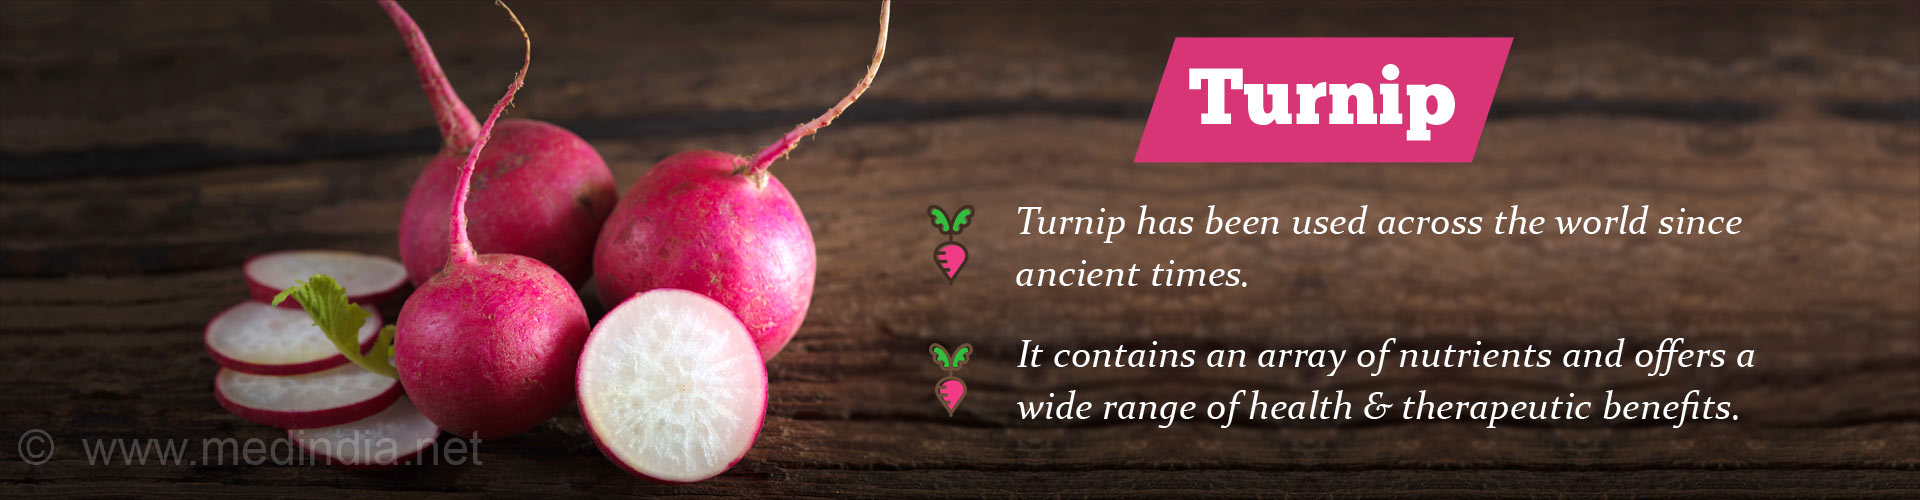 Turnip